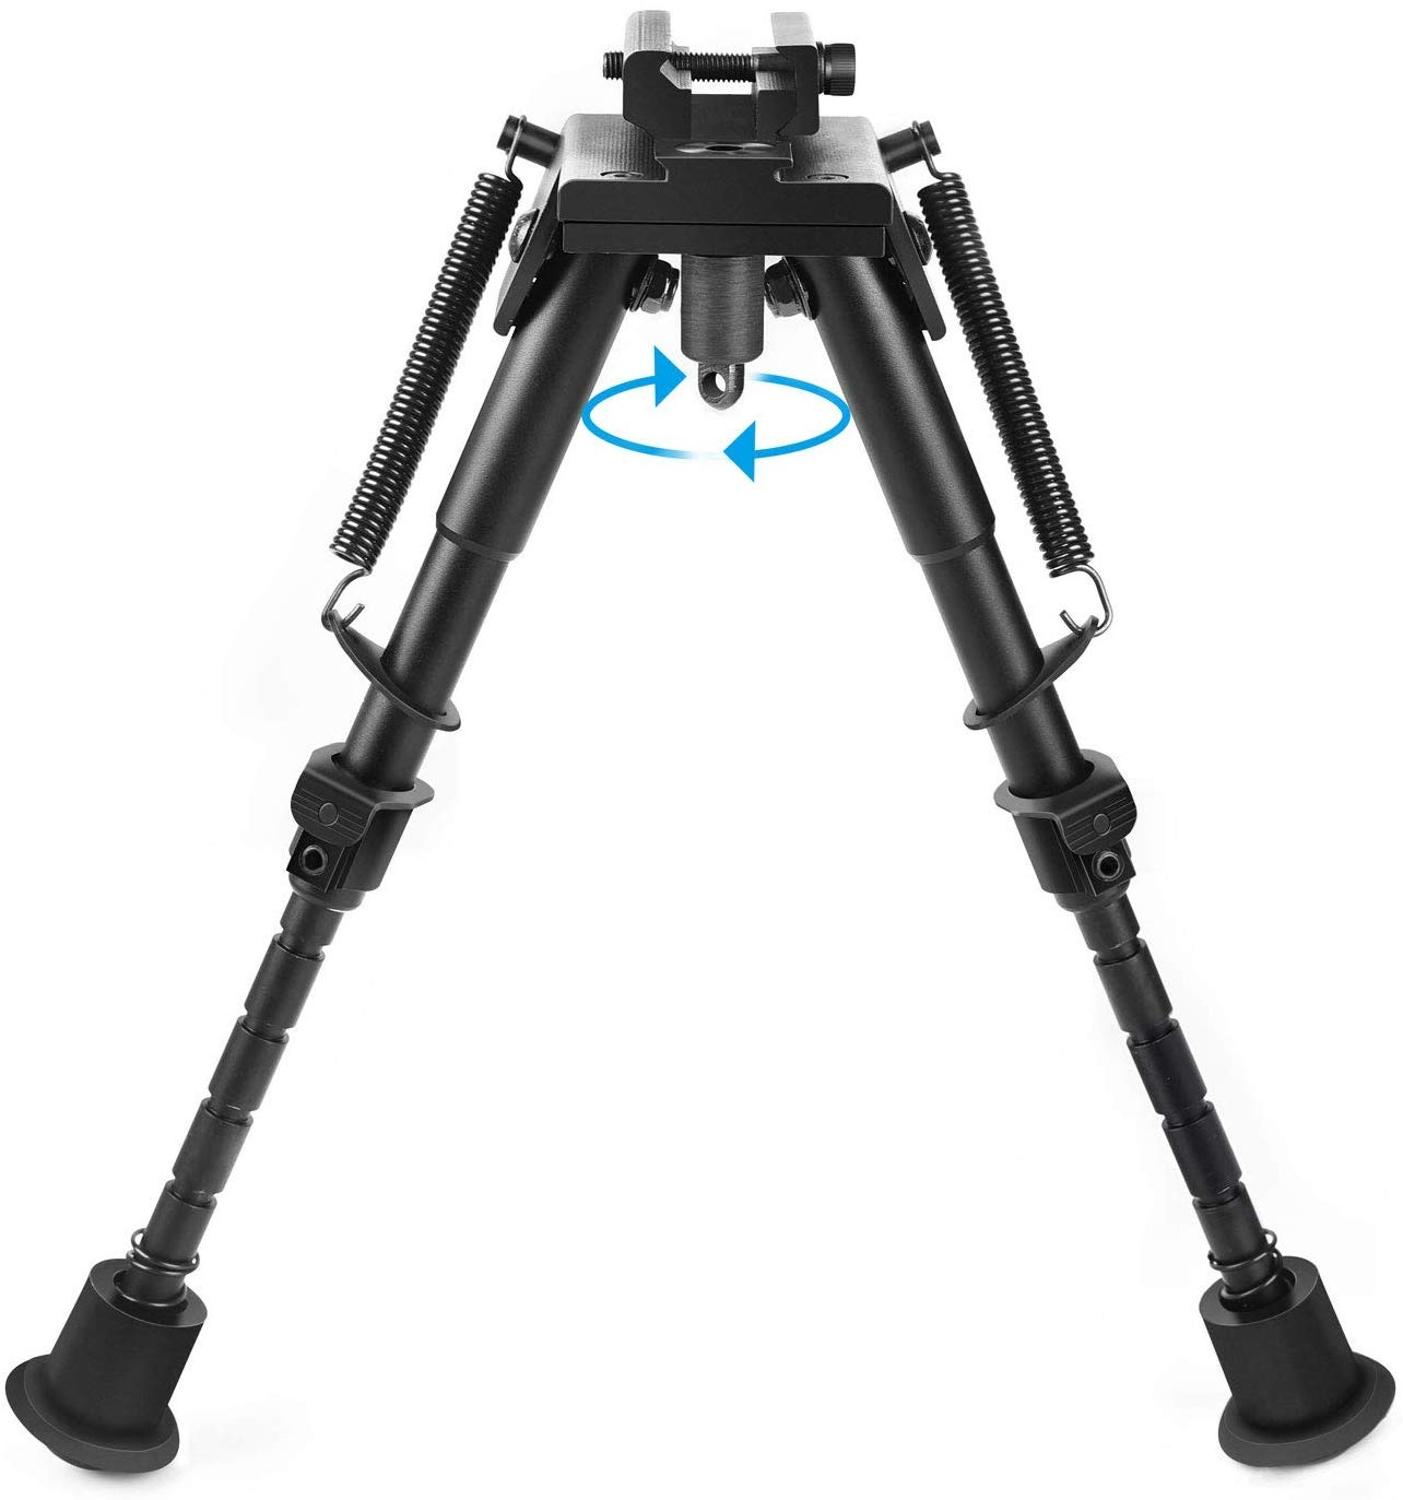 DREAMY ANT Outdoor Sports CS Tactical Support 6~9 Inch Tripod Joint Camera Converter 20mm Interface Guide Gel Ball Acc